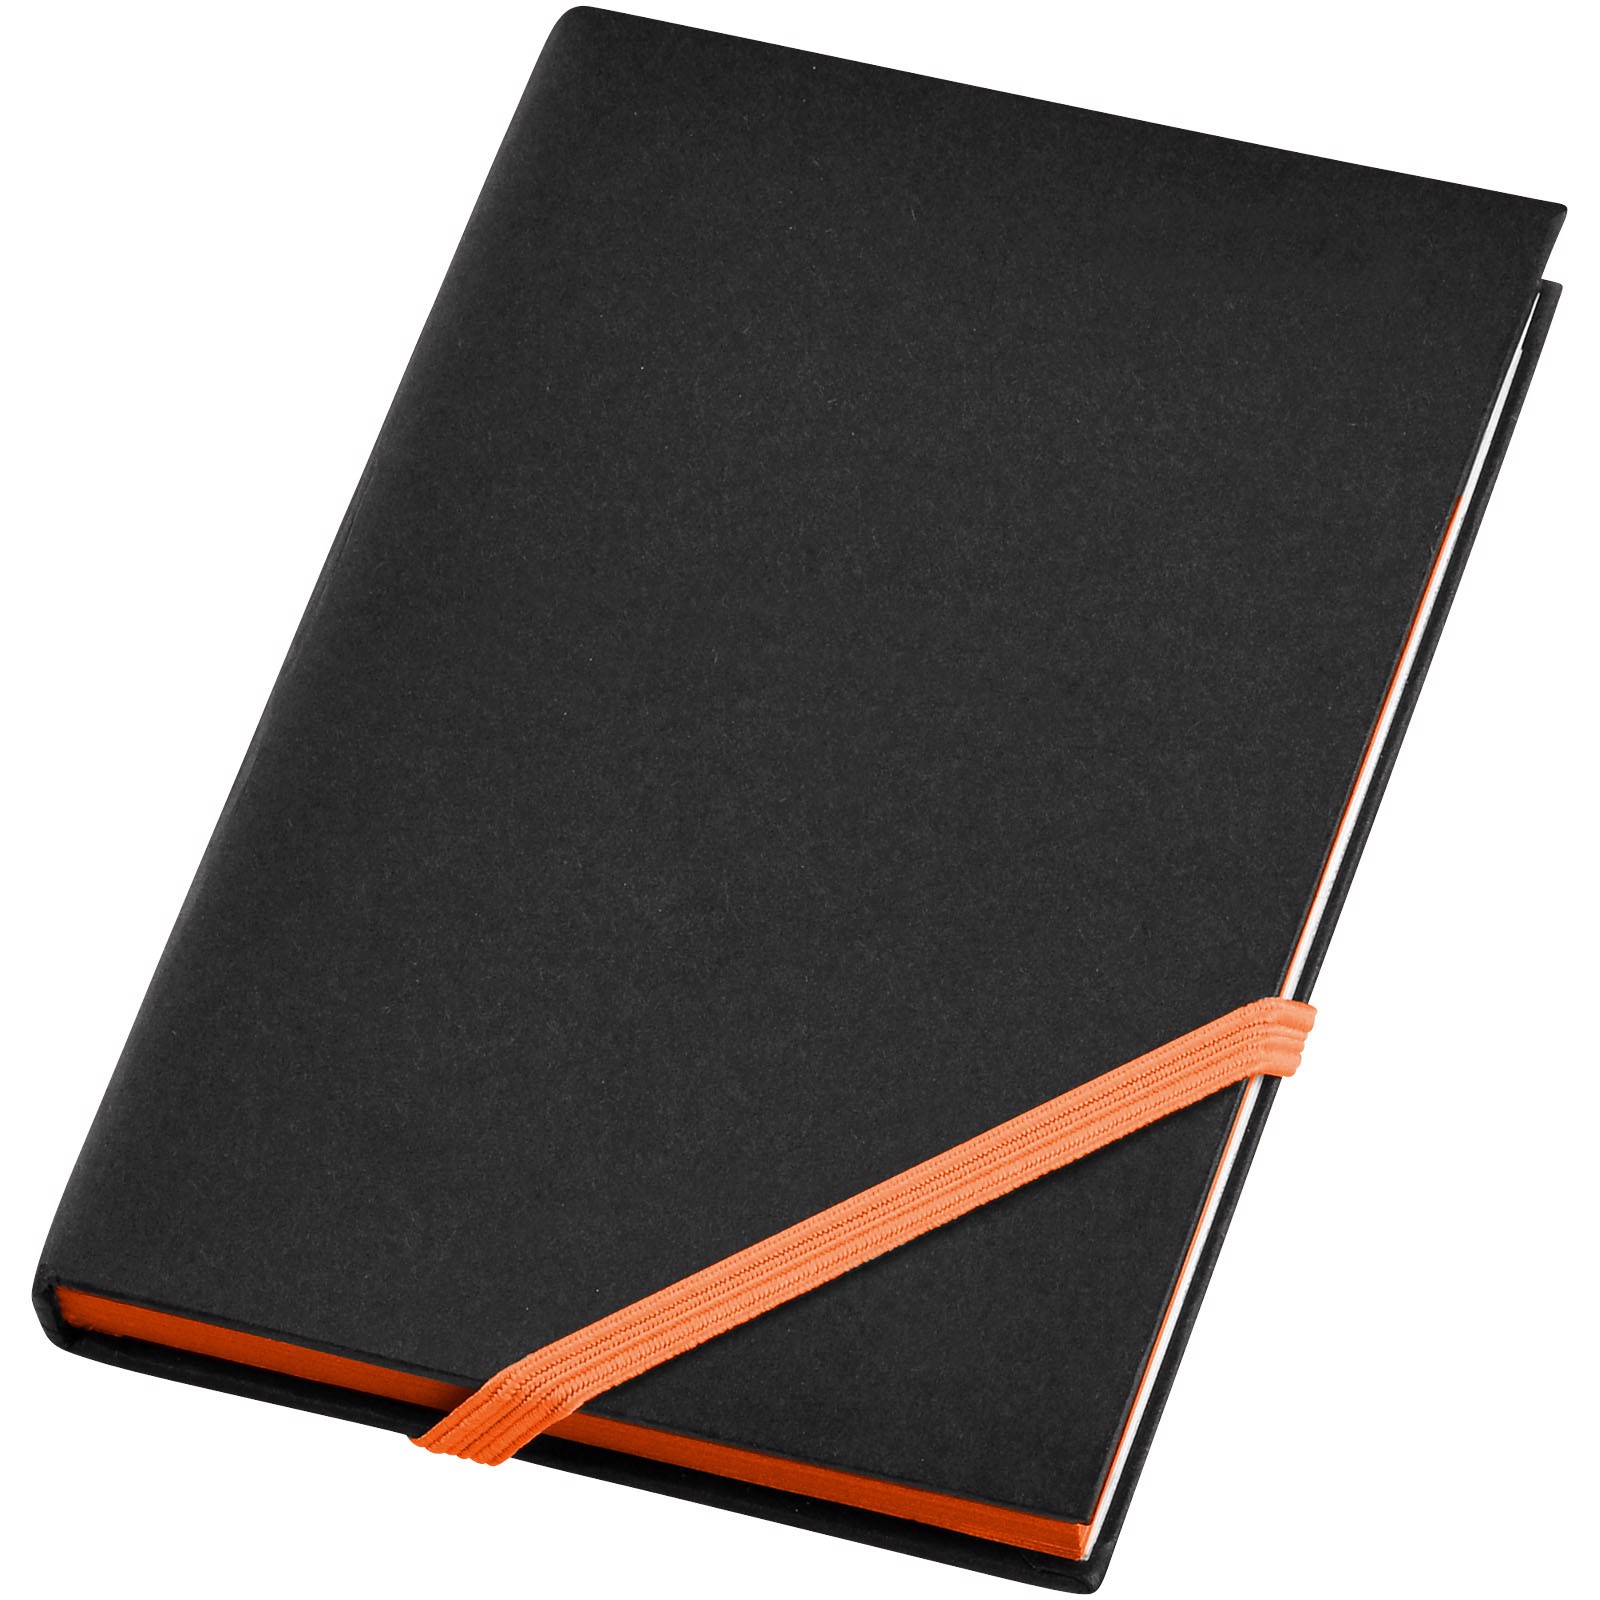 Travers small hard cover notebook - Solid black / Orange